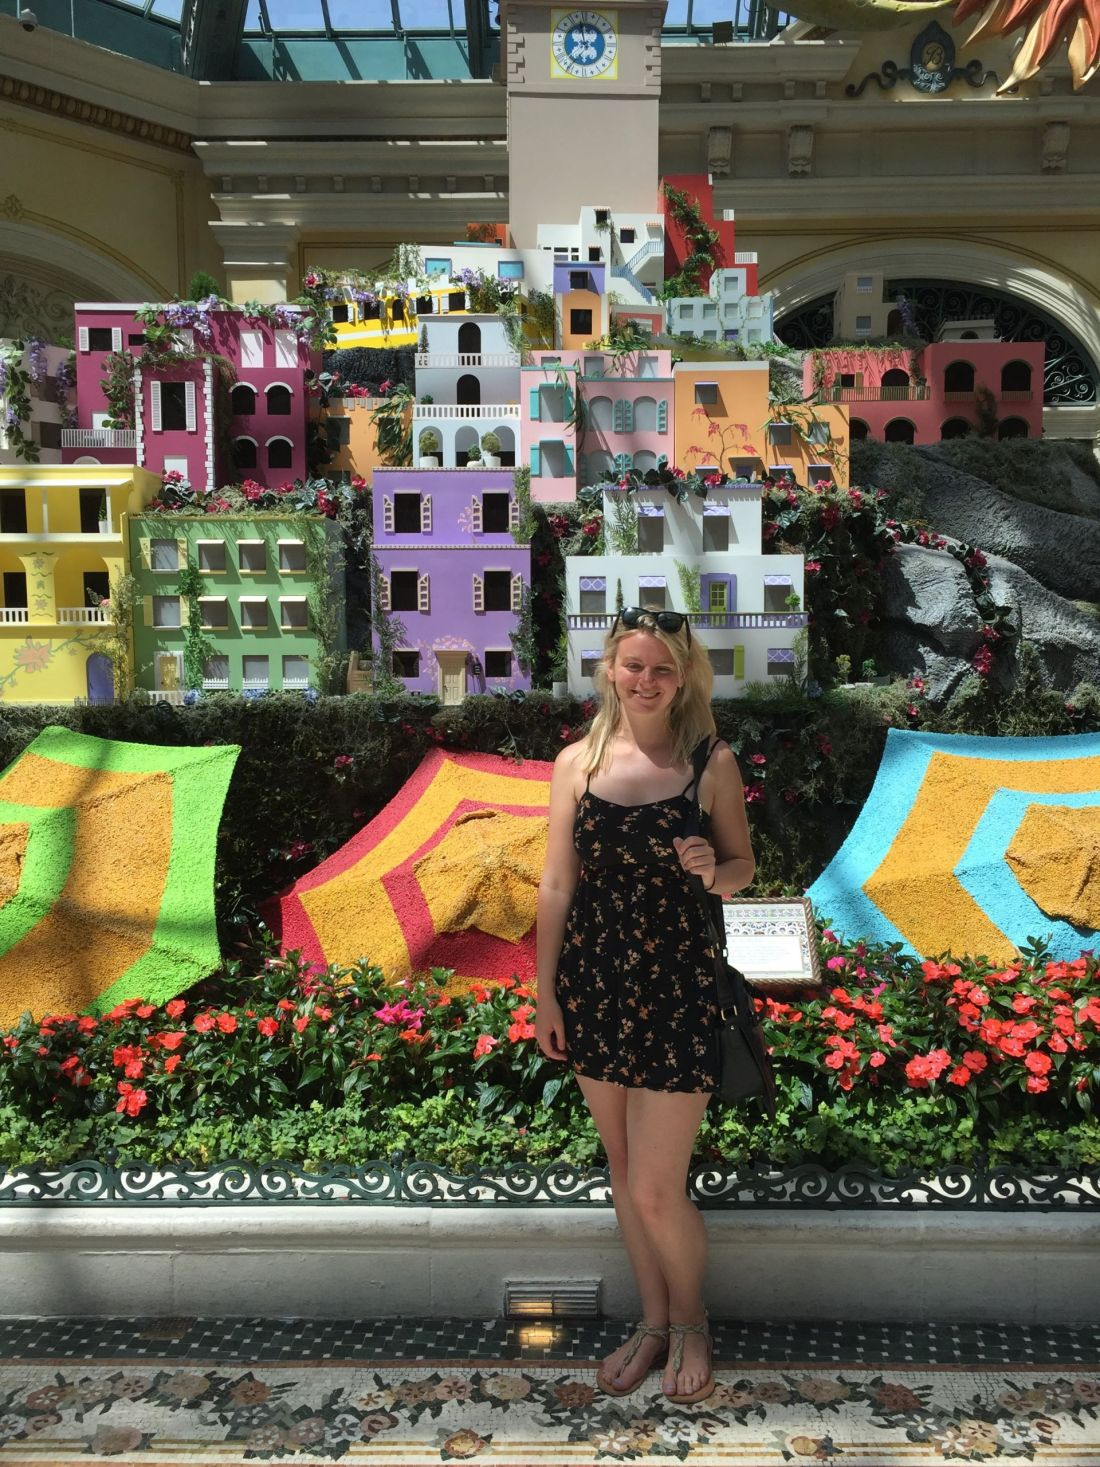 Laura at the Bellagio Gardens